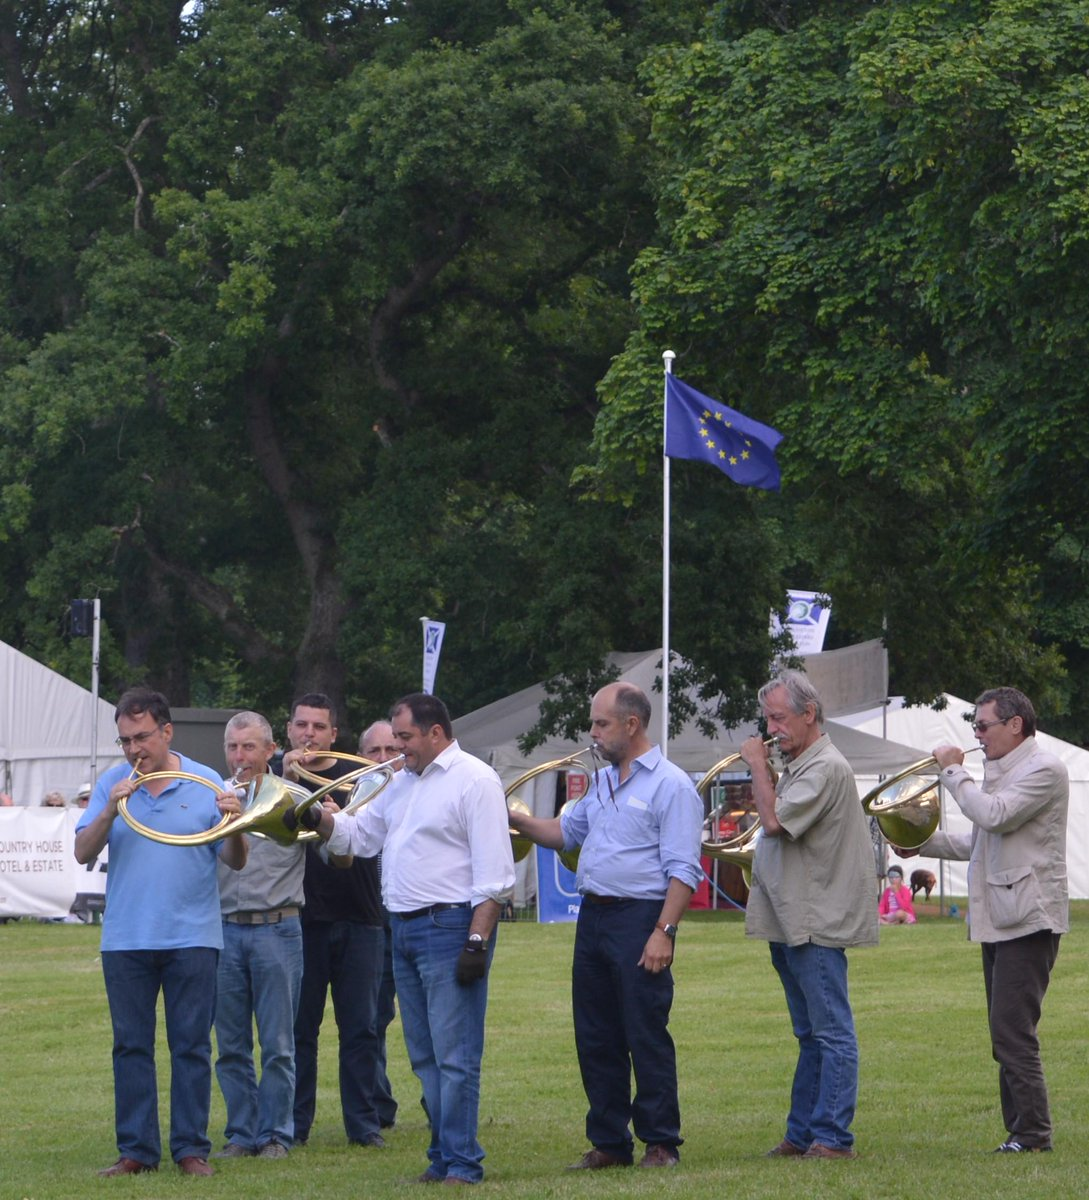 A group of French horn-blowers at the Scottish Game Fair today.   @ScotGameFair @SconePalace http://t.co/xFaNfdrnL4